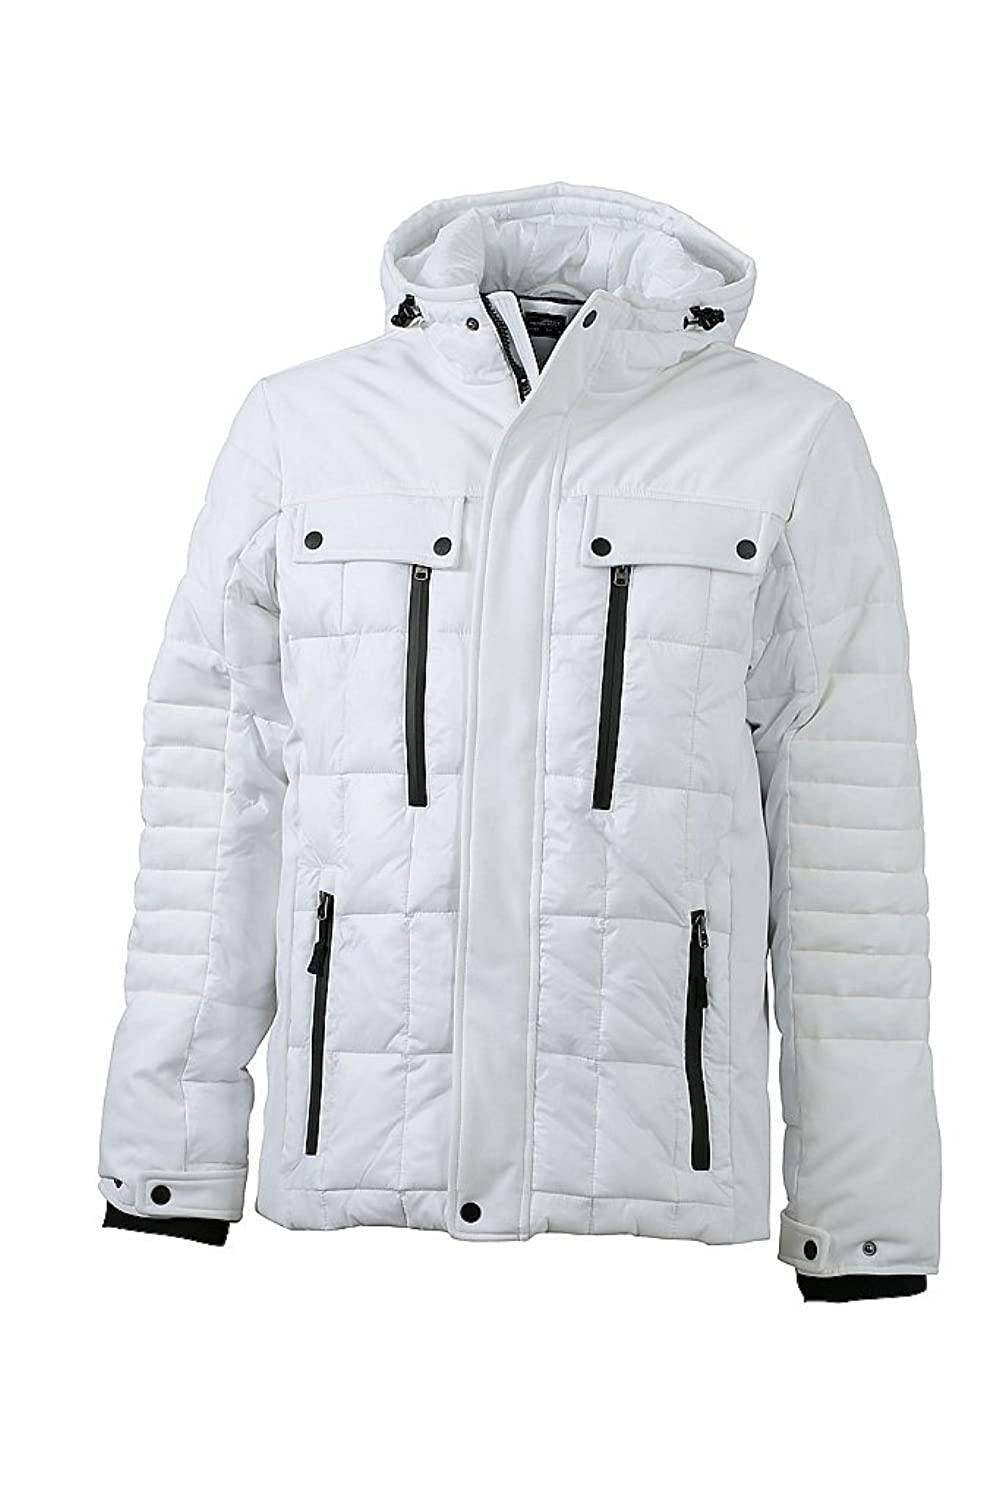 JAMES & NICHOLSON Stylish jacket in trendy mixed material